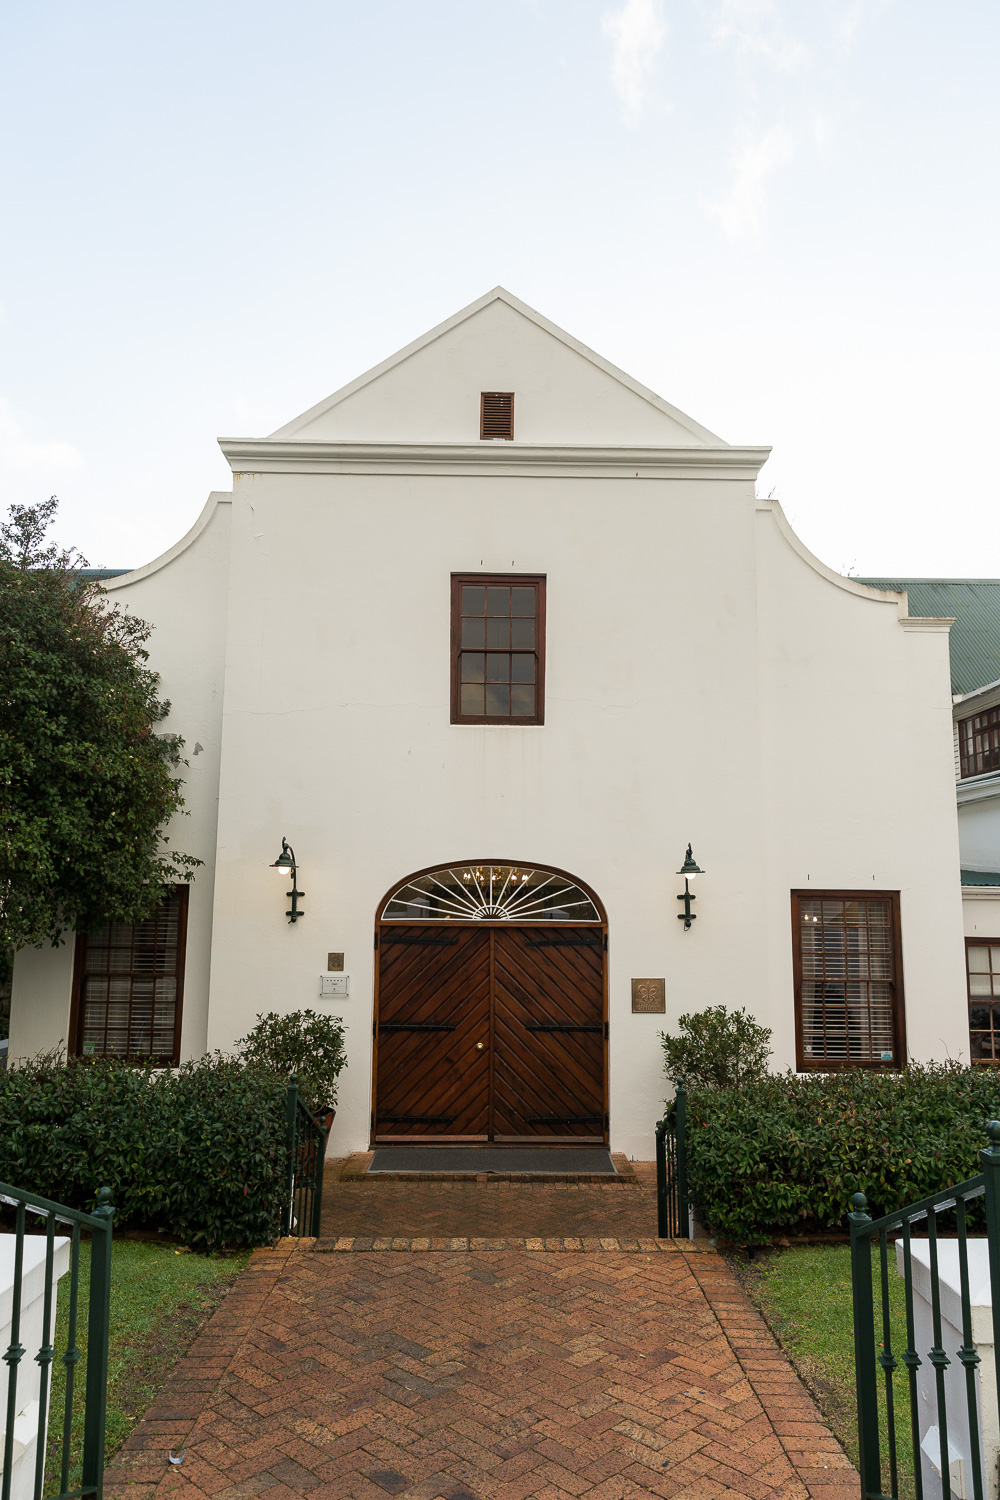 The Green House at Cellars Hohenort